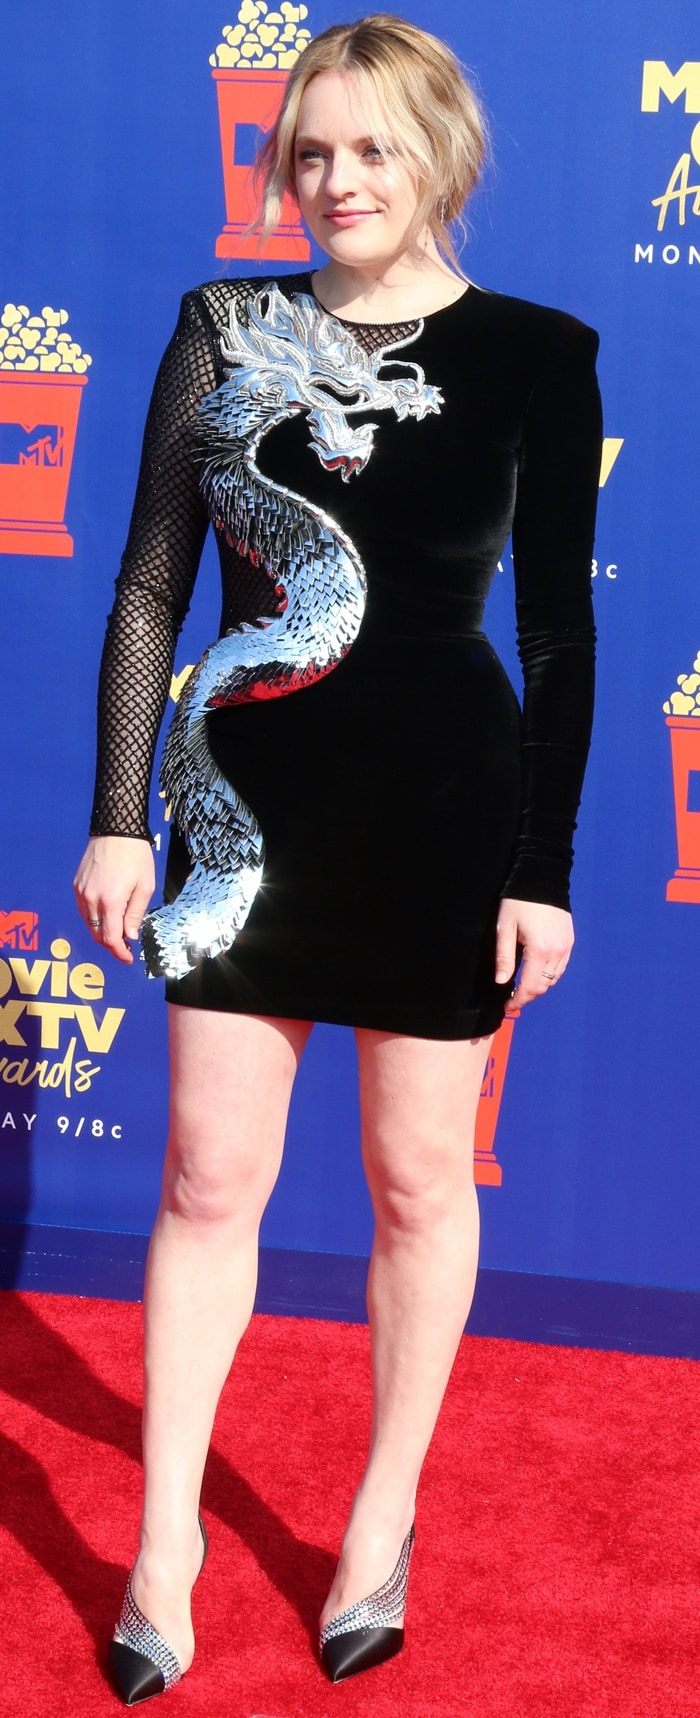 Elisabeth Moss flaunted her legs at the 2019 MTV Movie & TV Awards